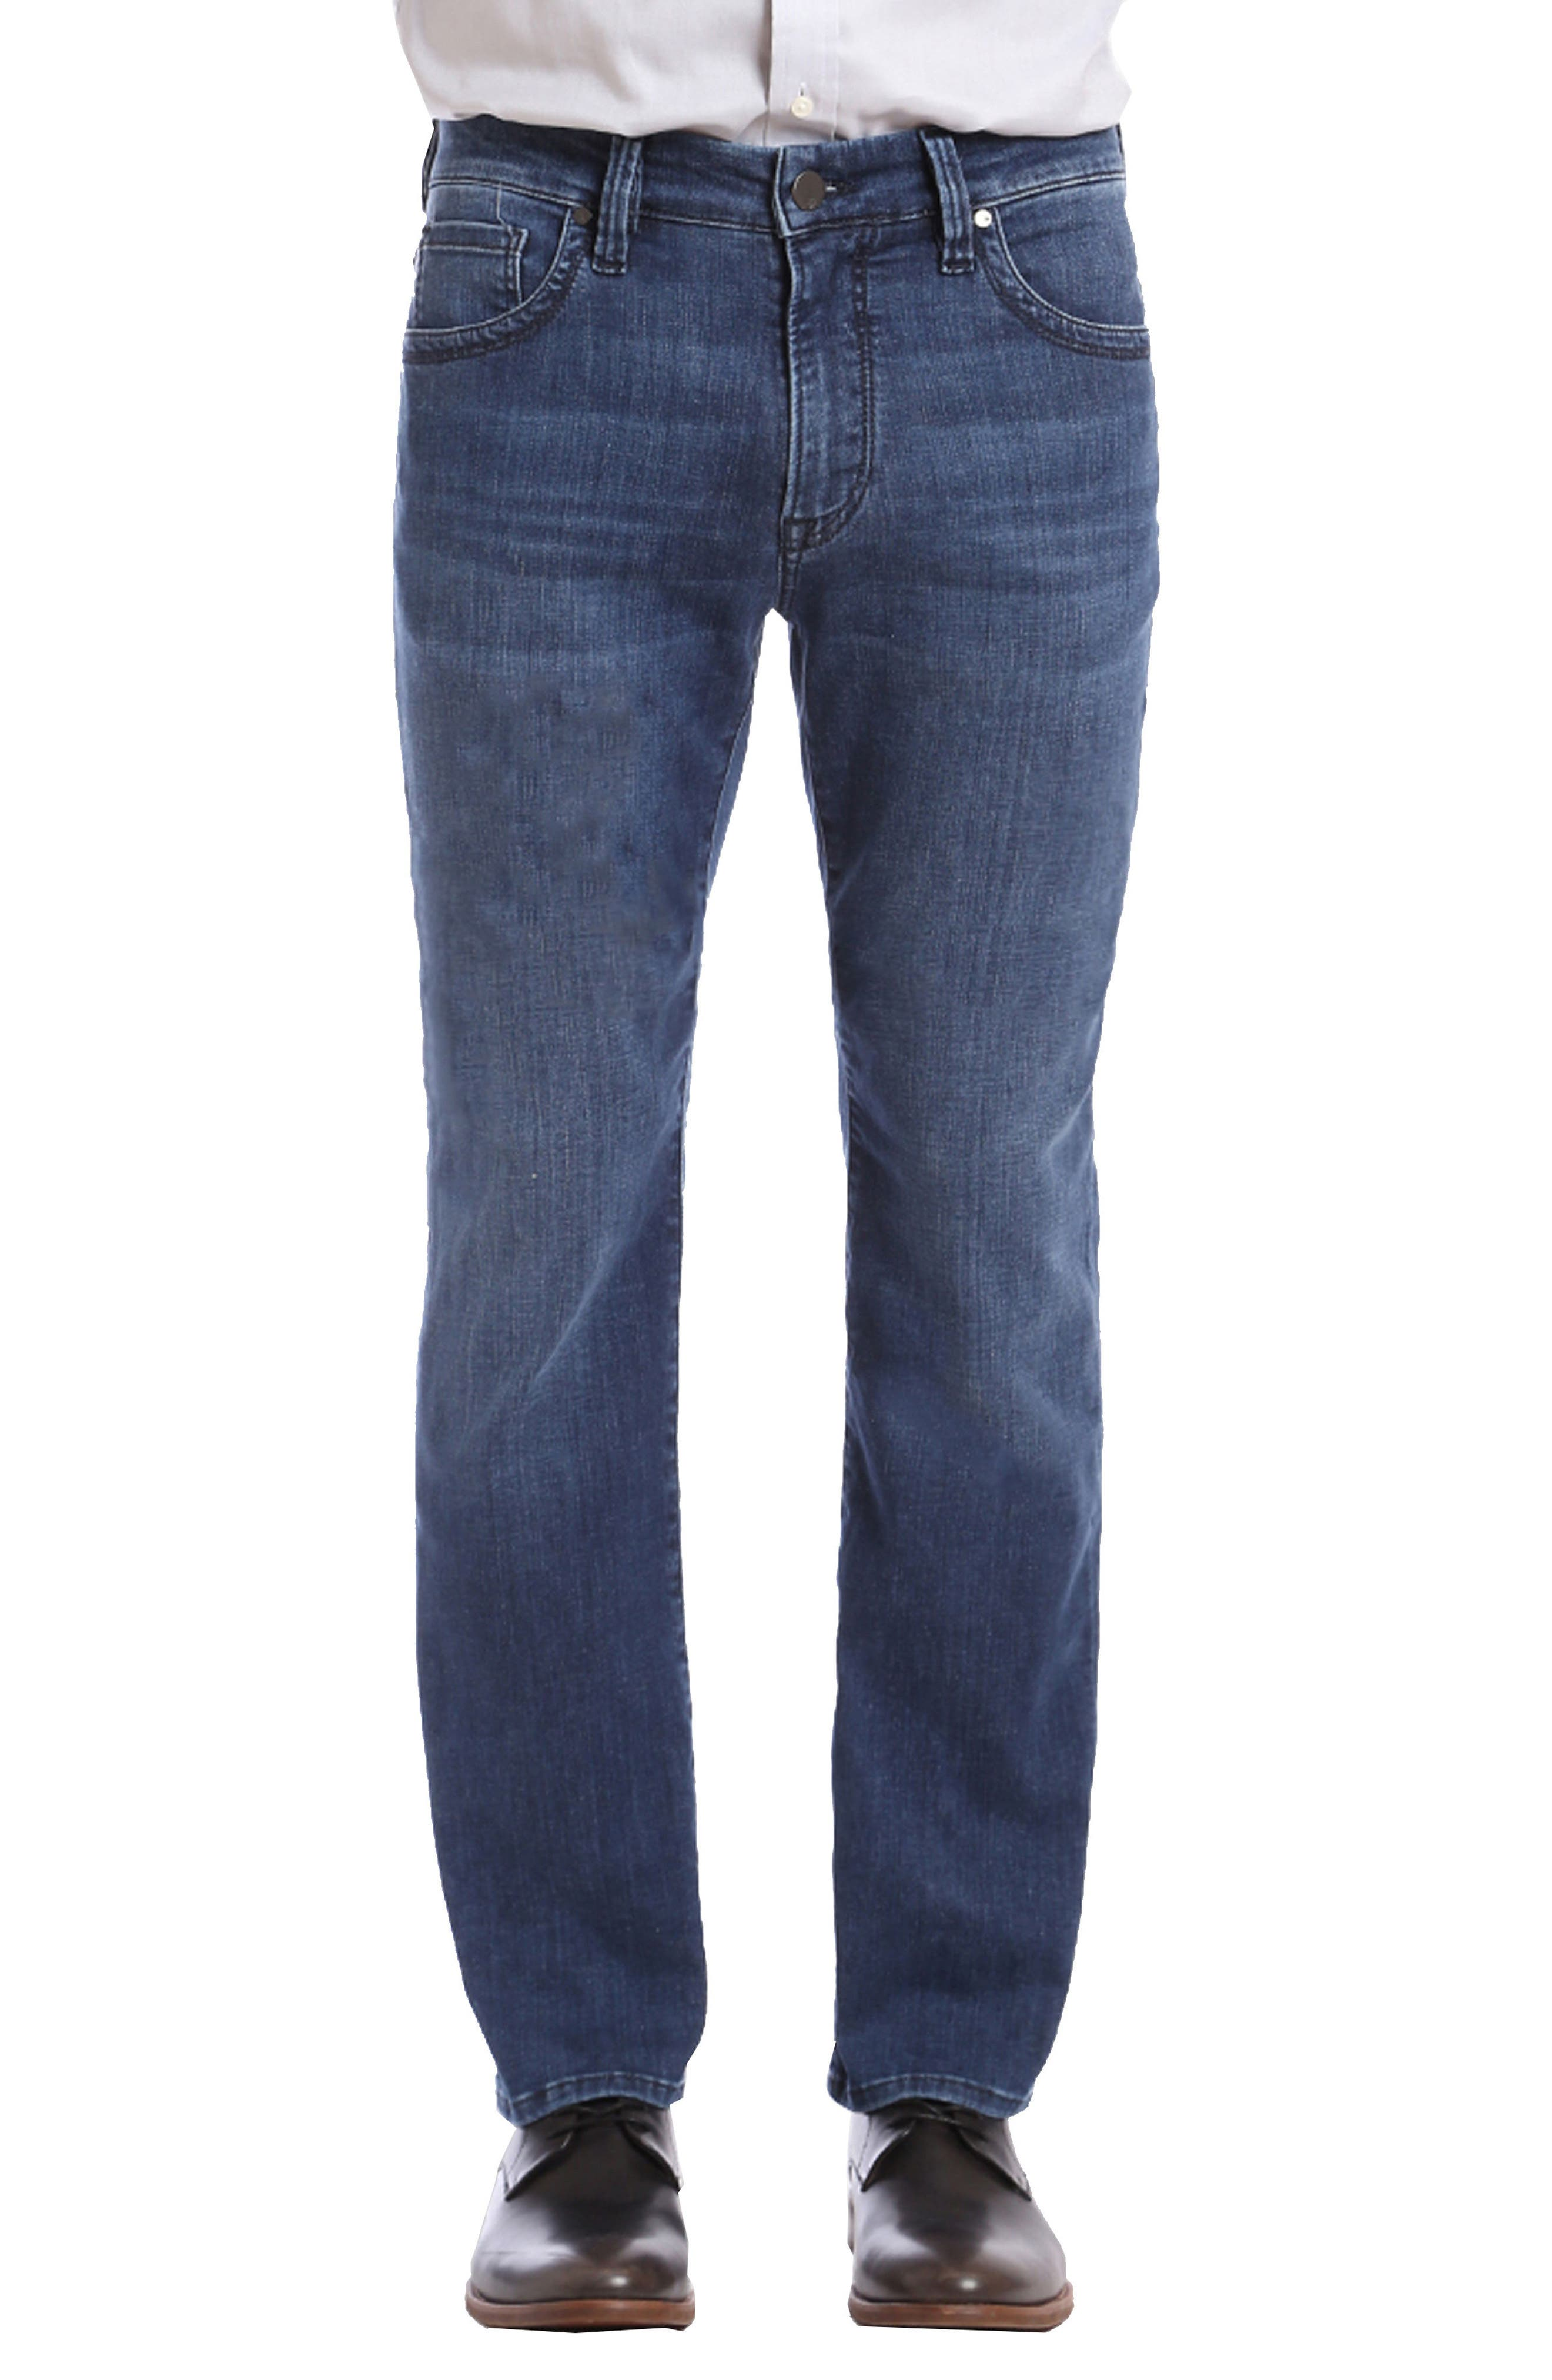 Courage Straight Fit Jeans,                         Main,                         color, Mid Milan